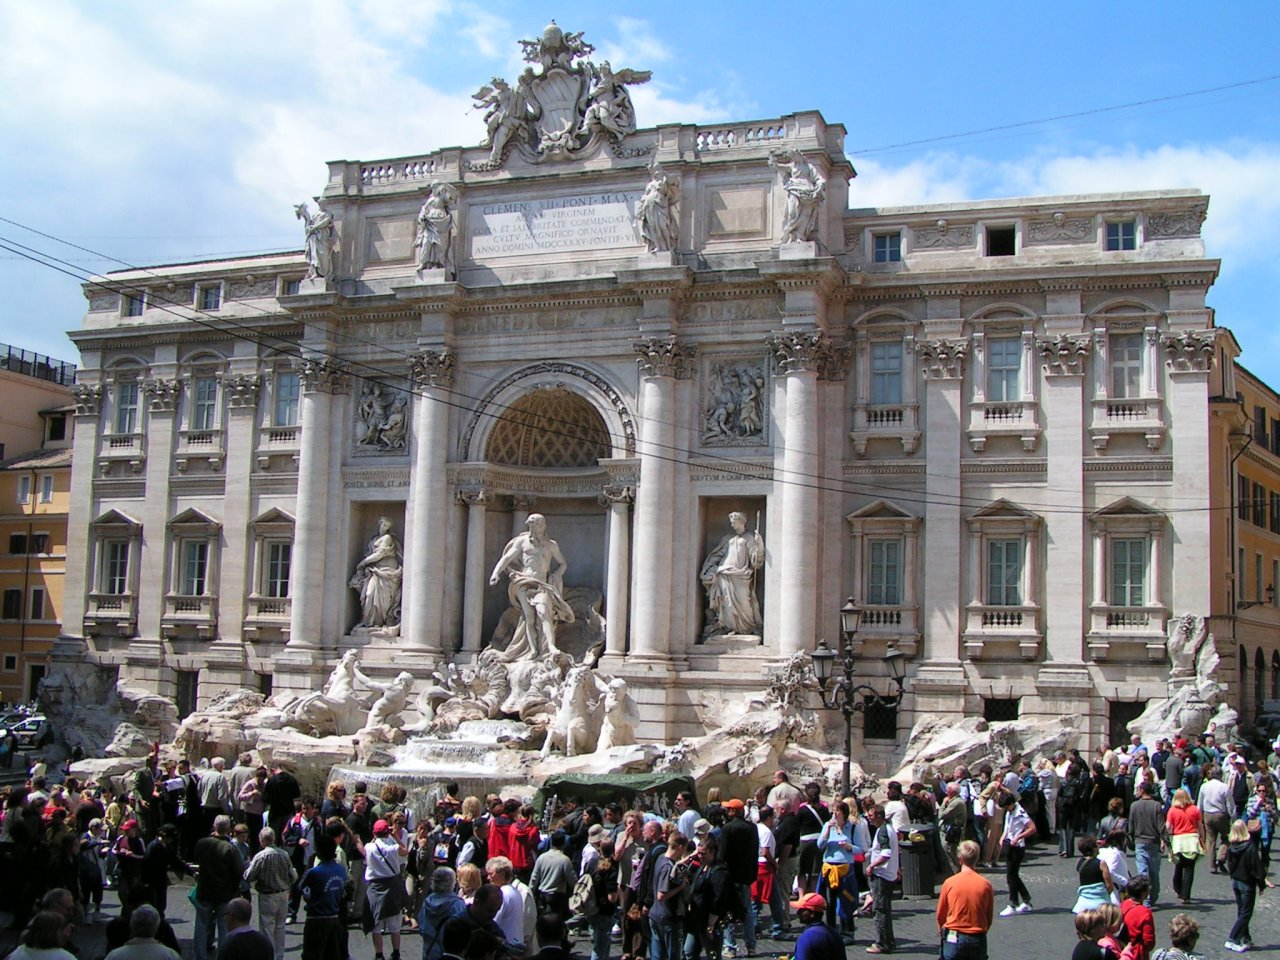 Fontana di Trevi, Rome Attractions, Best Places to visit in Rome